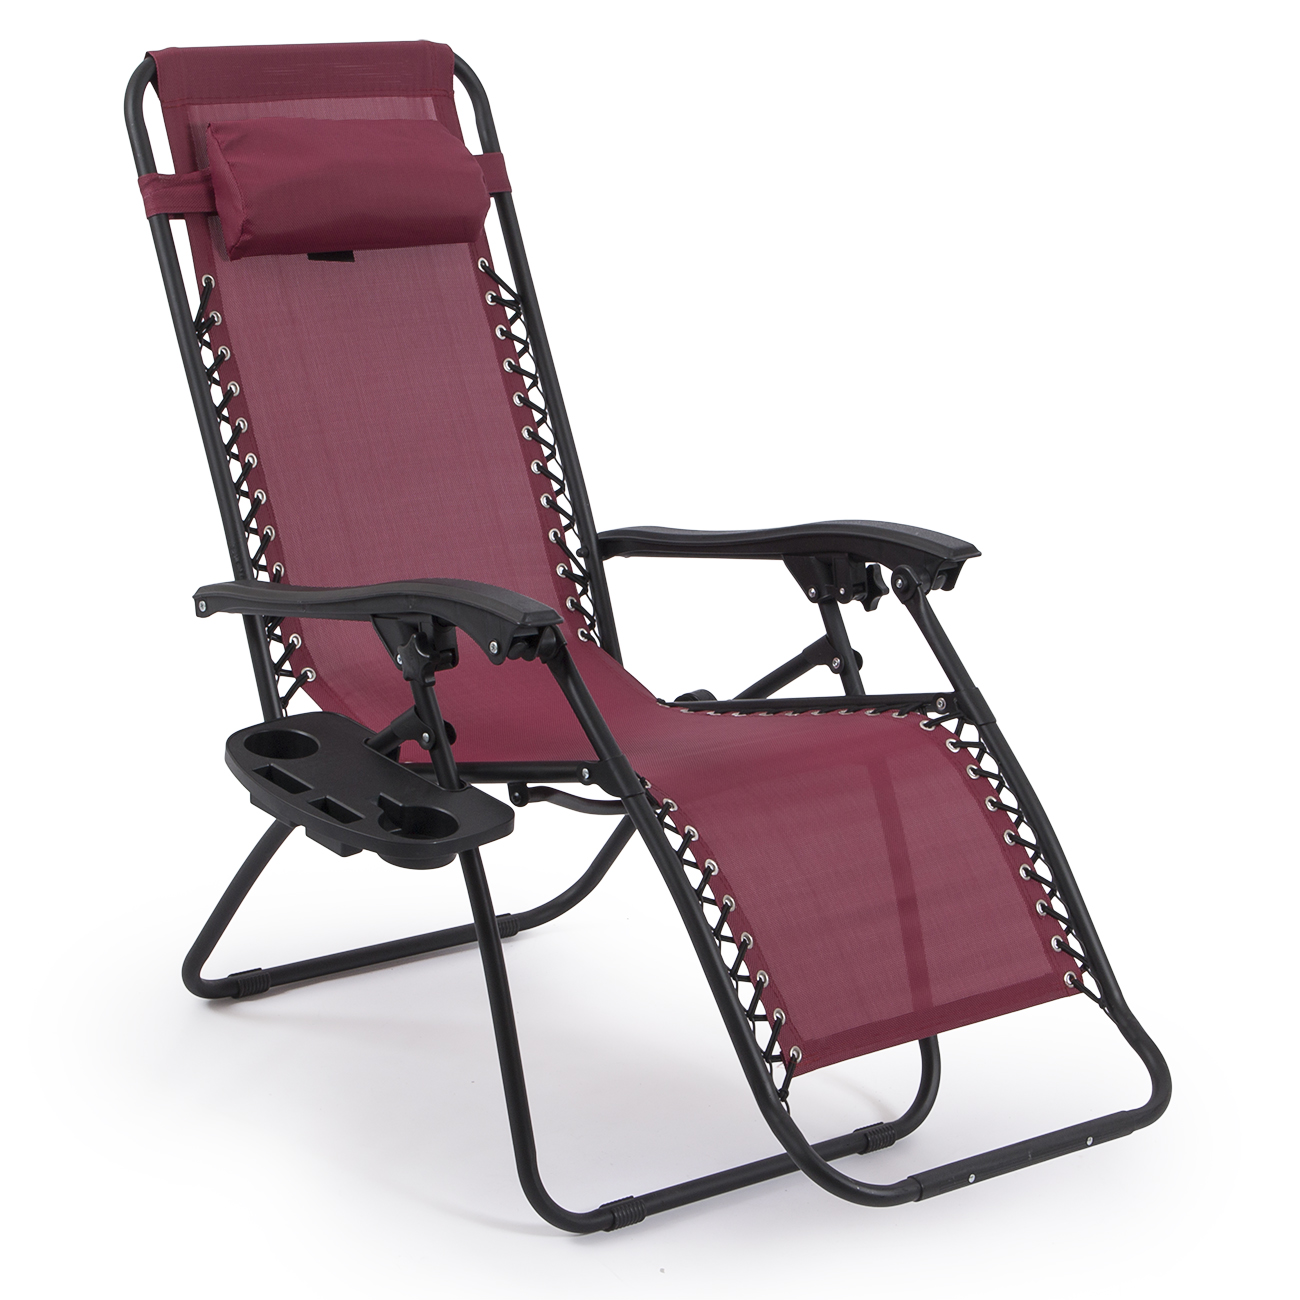 Belleze Set Of 2 Zero Gravity Chair Lounge Chairs With Utility Tray Cup Reclining Seat Burgundy